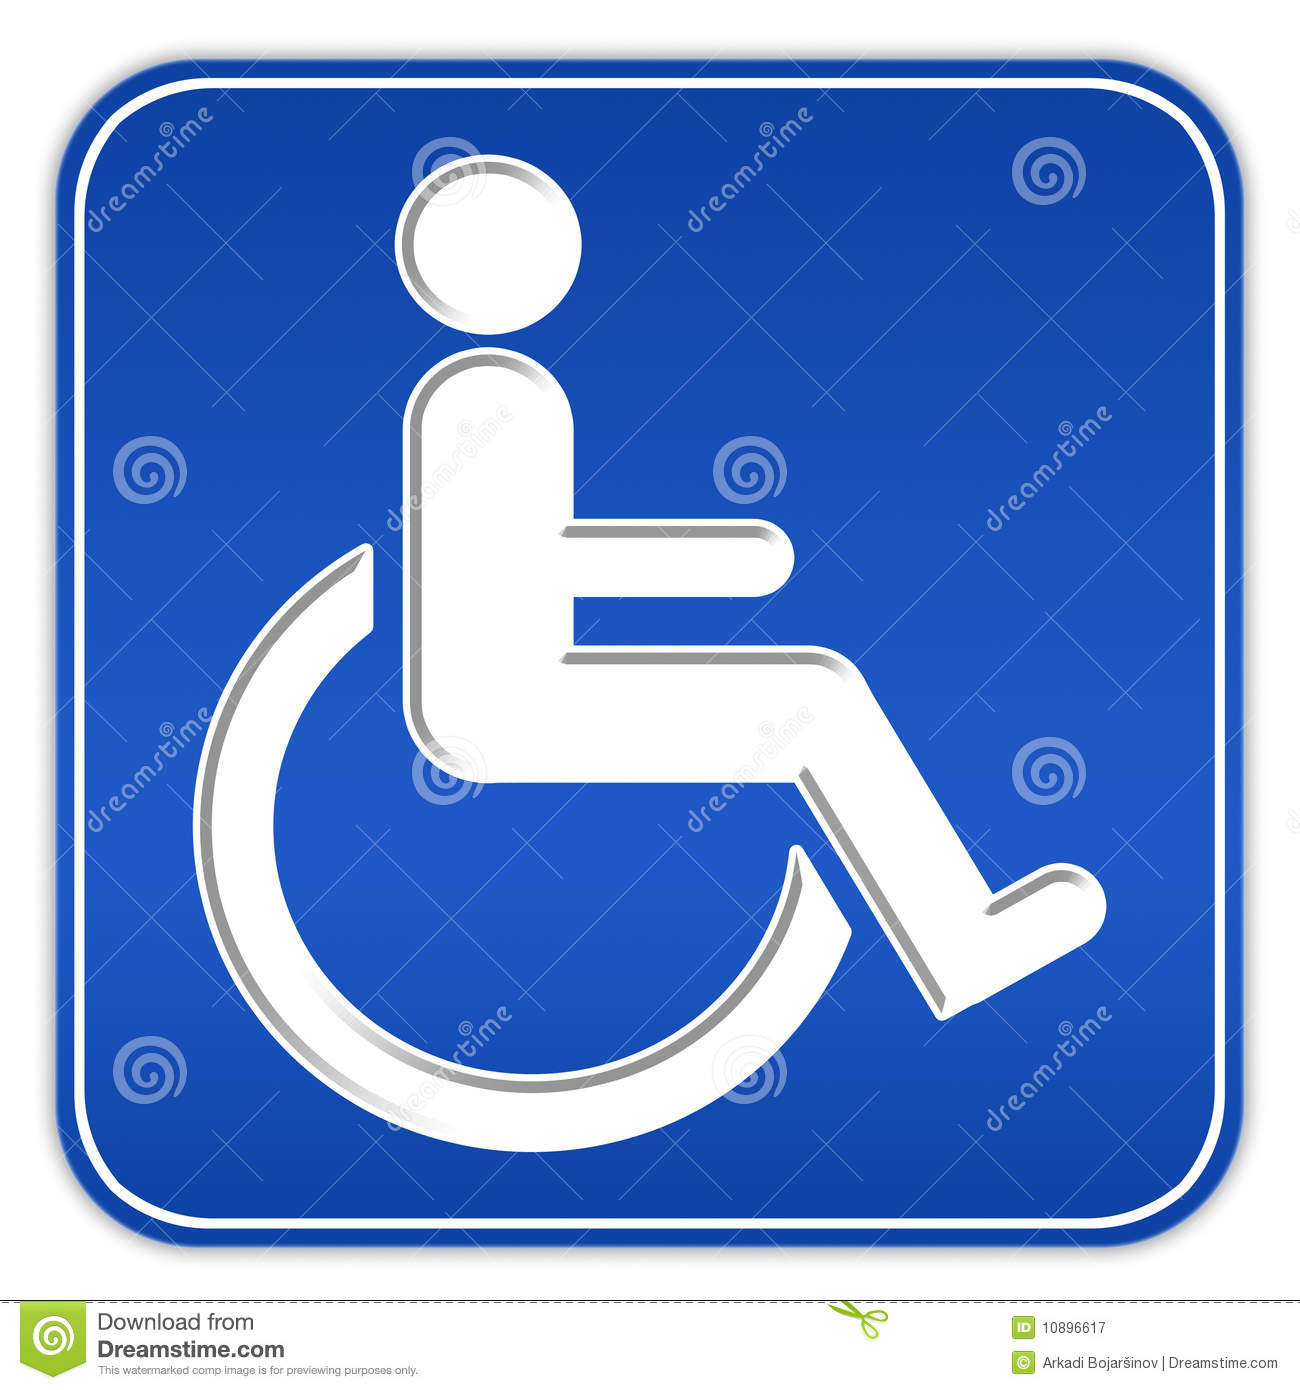 handicap deutsch